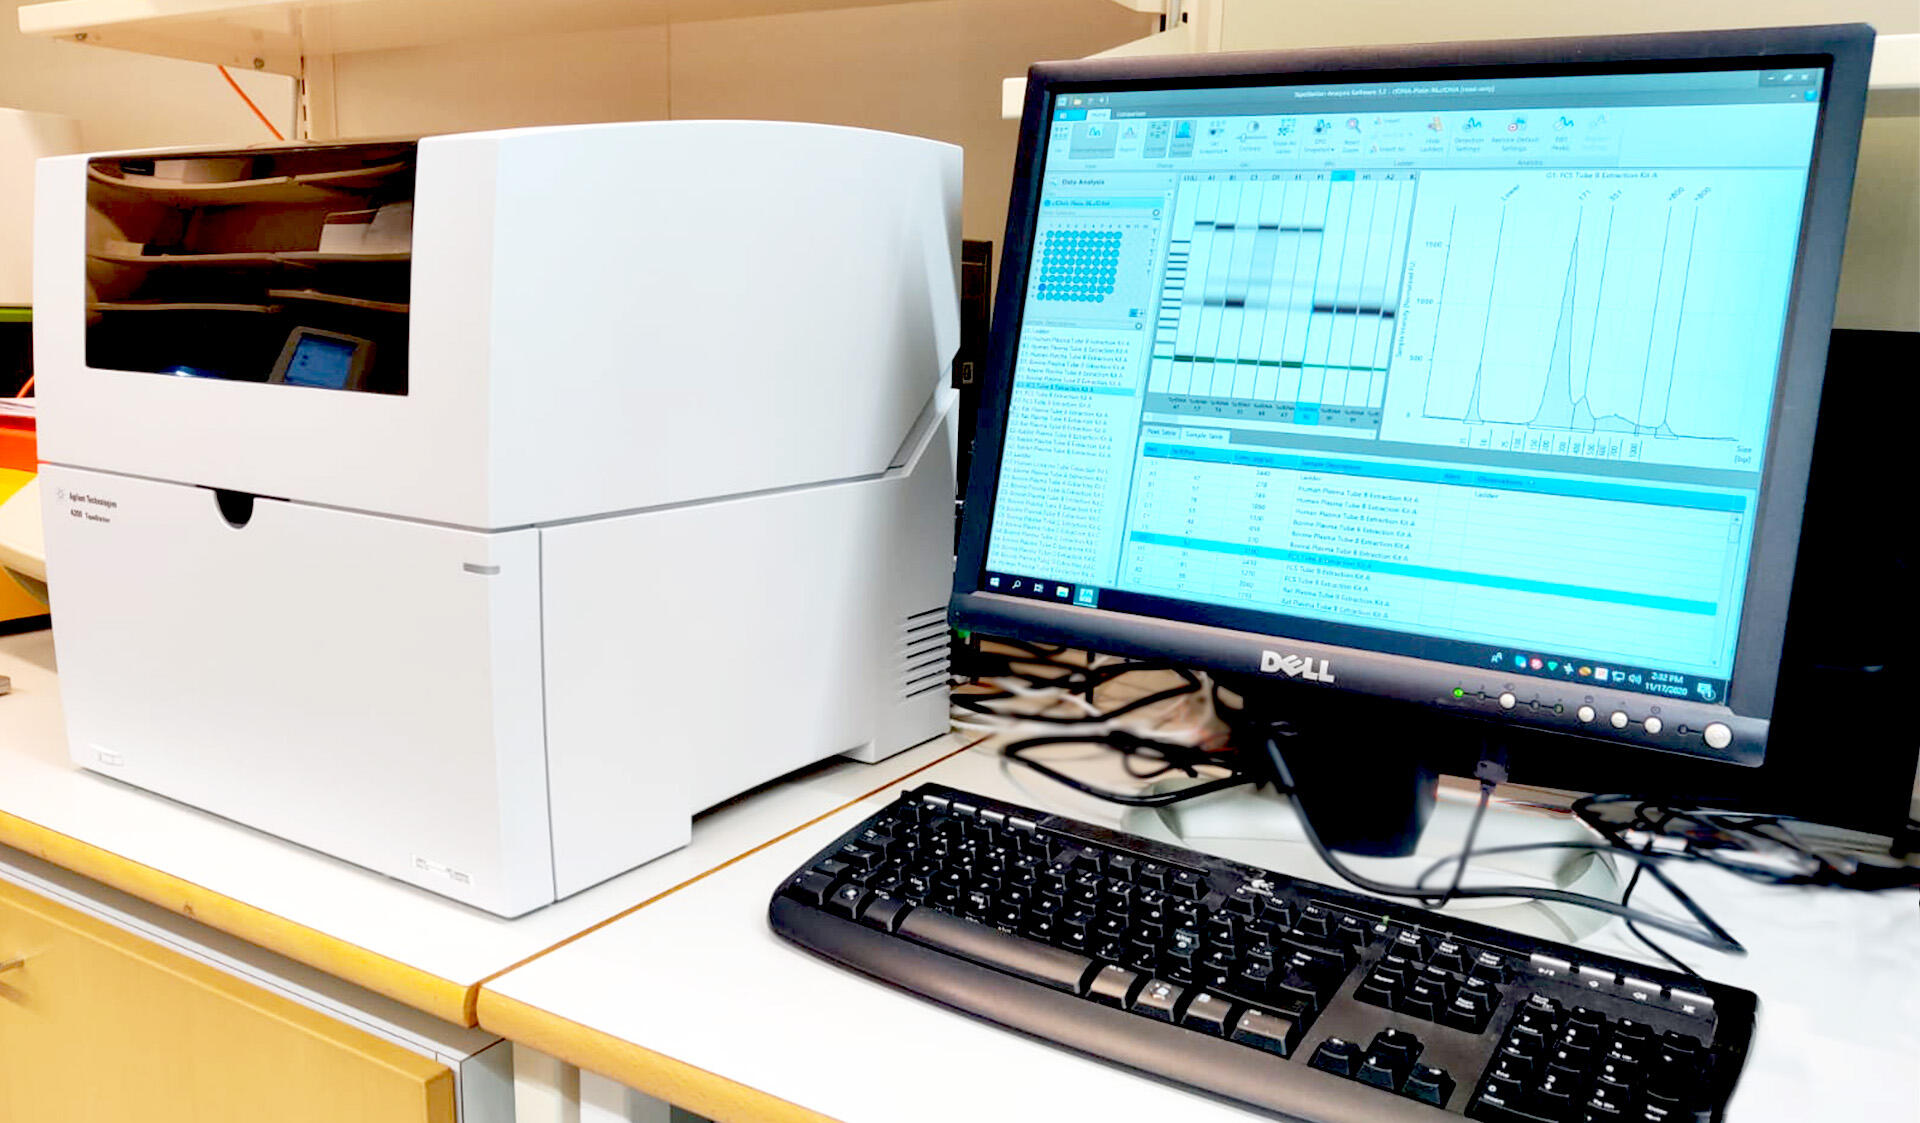 TapeStation is suitable to analyze size, quantity, and integrity of your samples.